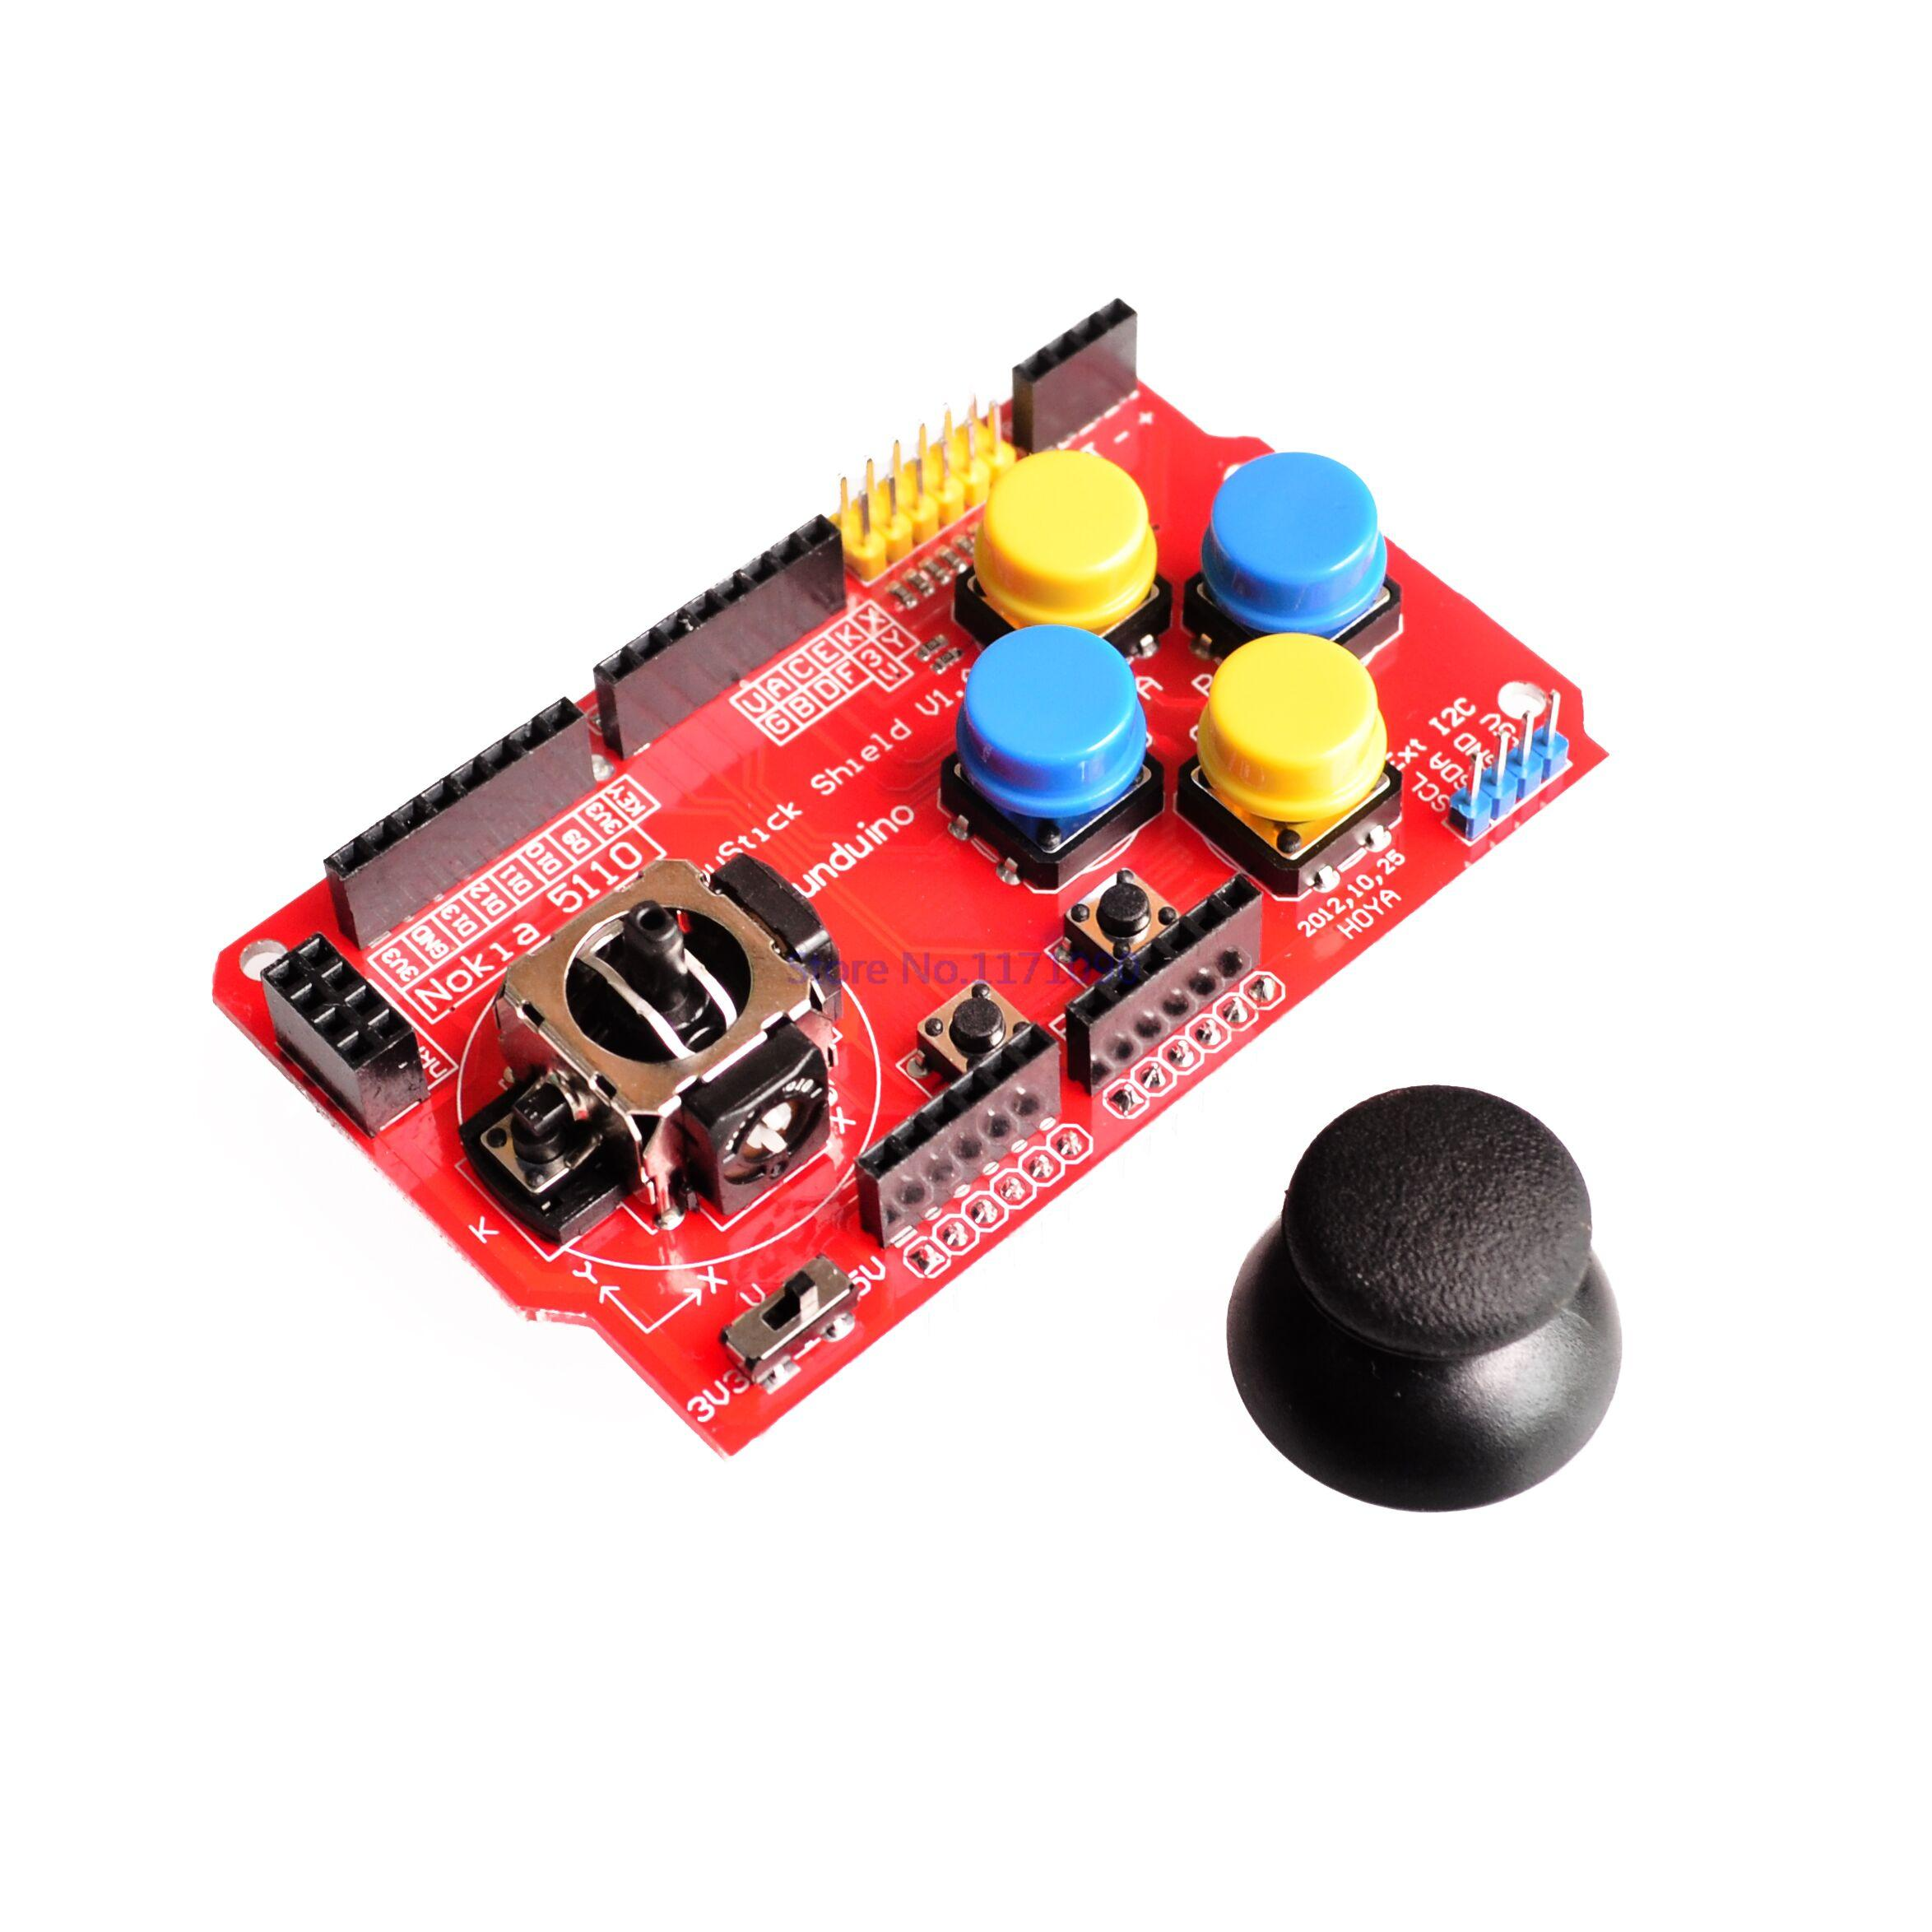 Active Components 5pcs/lot Gamepads Joystick Keypad Shield Ps2 For Arduino Nrf24l01 Nk 5110 Lcd I2c Firm In Structure